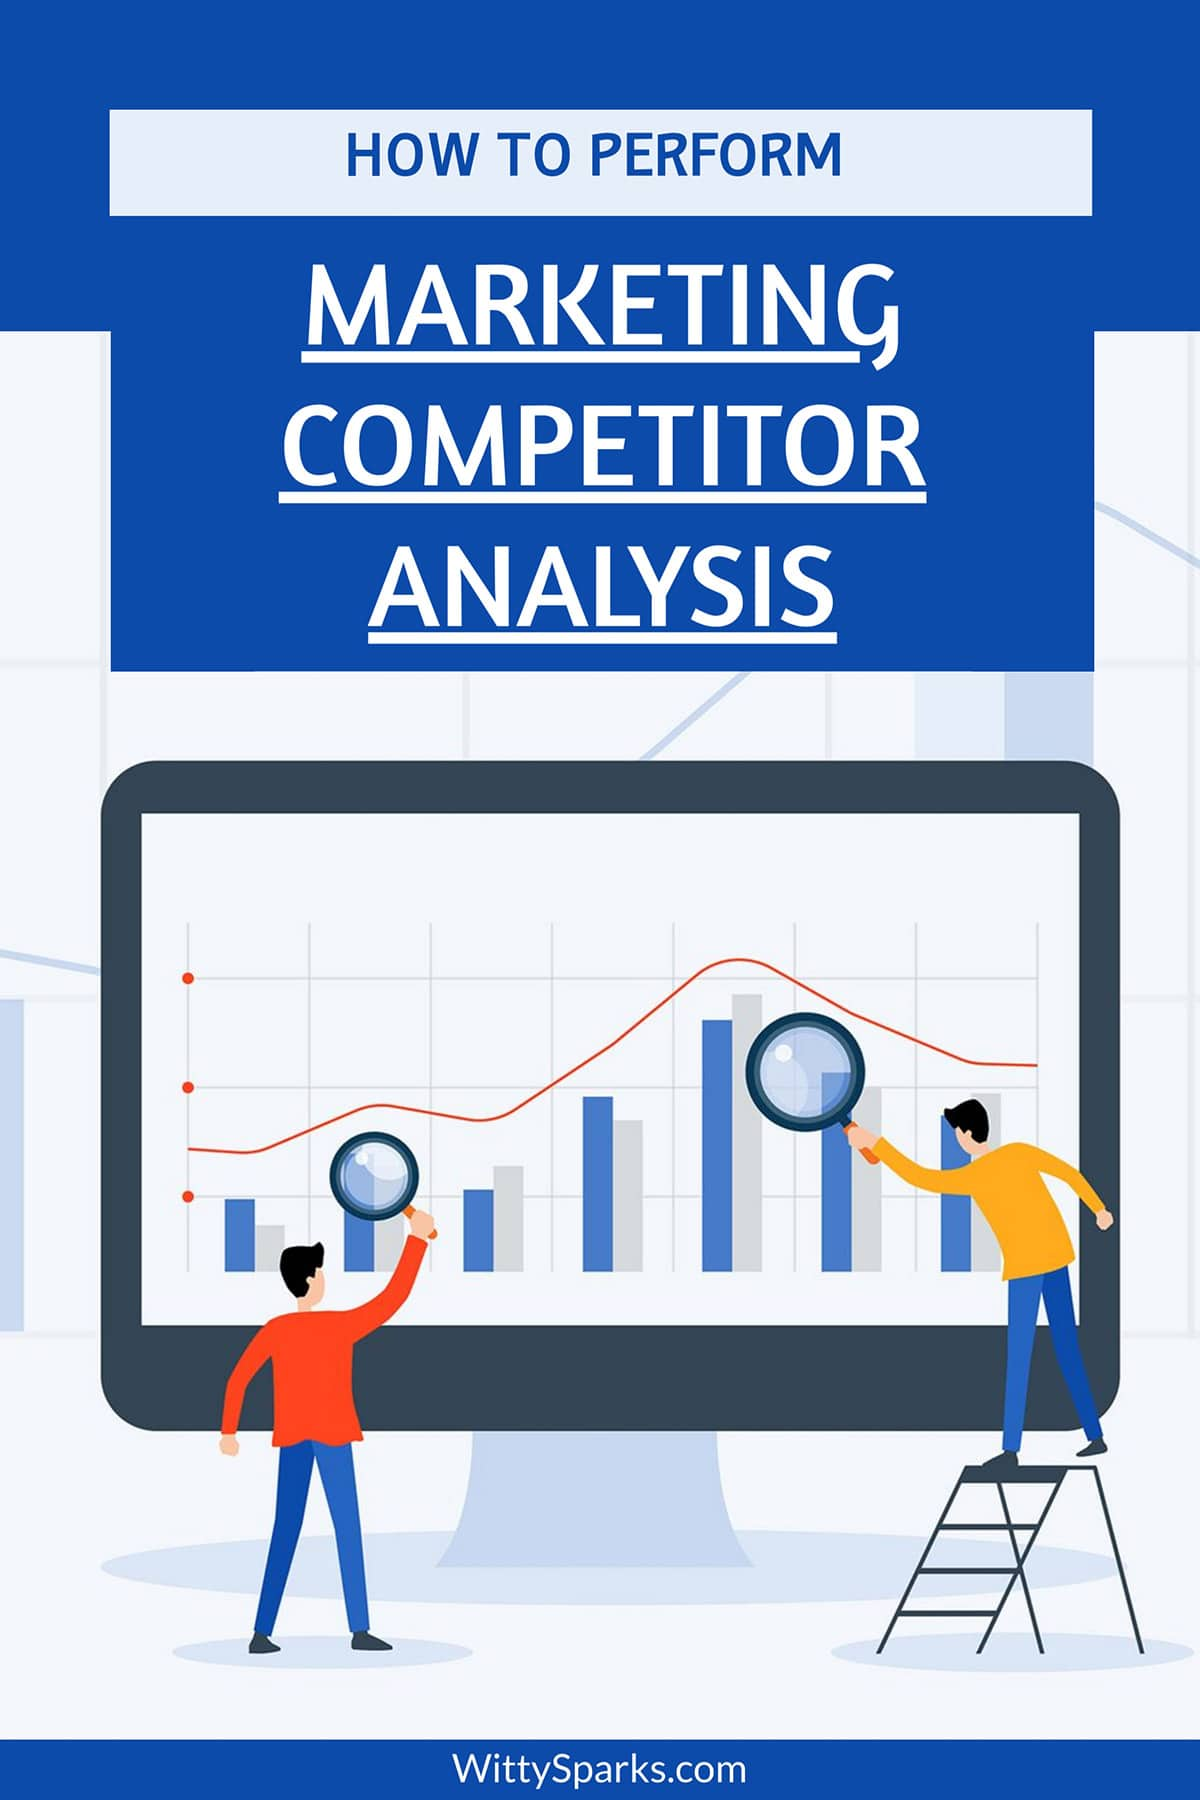 Tips to perform marketing competitor analysis